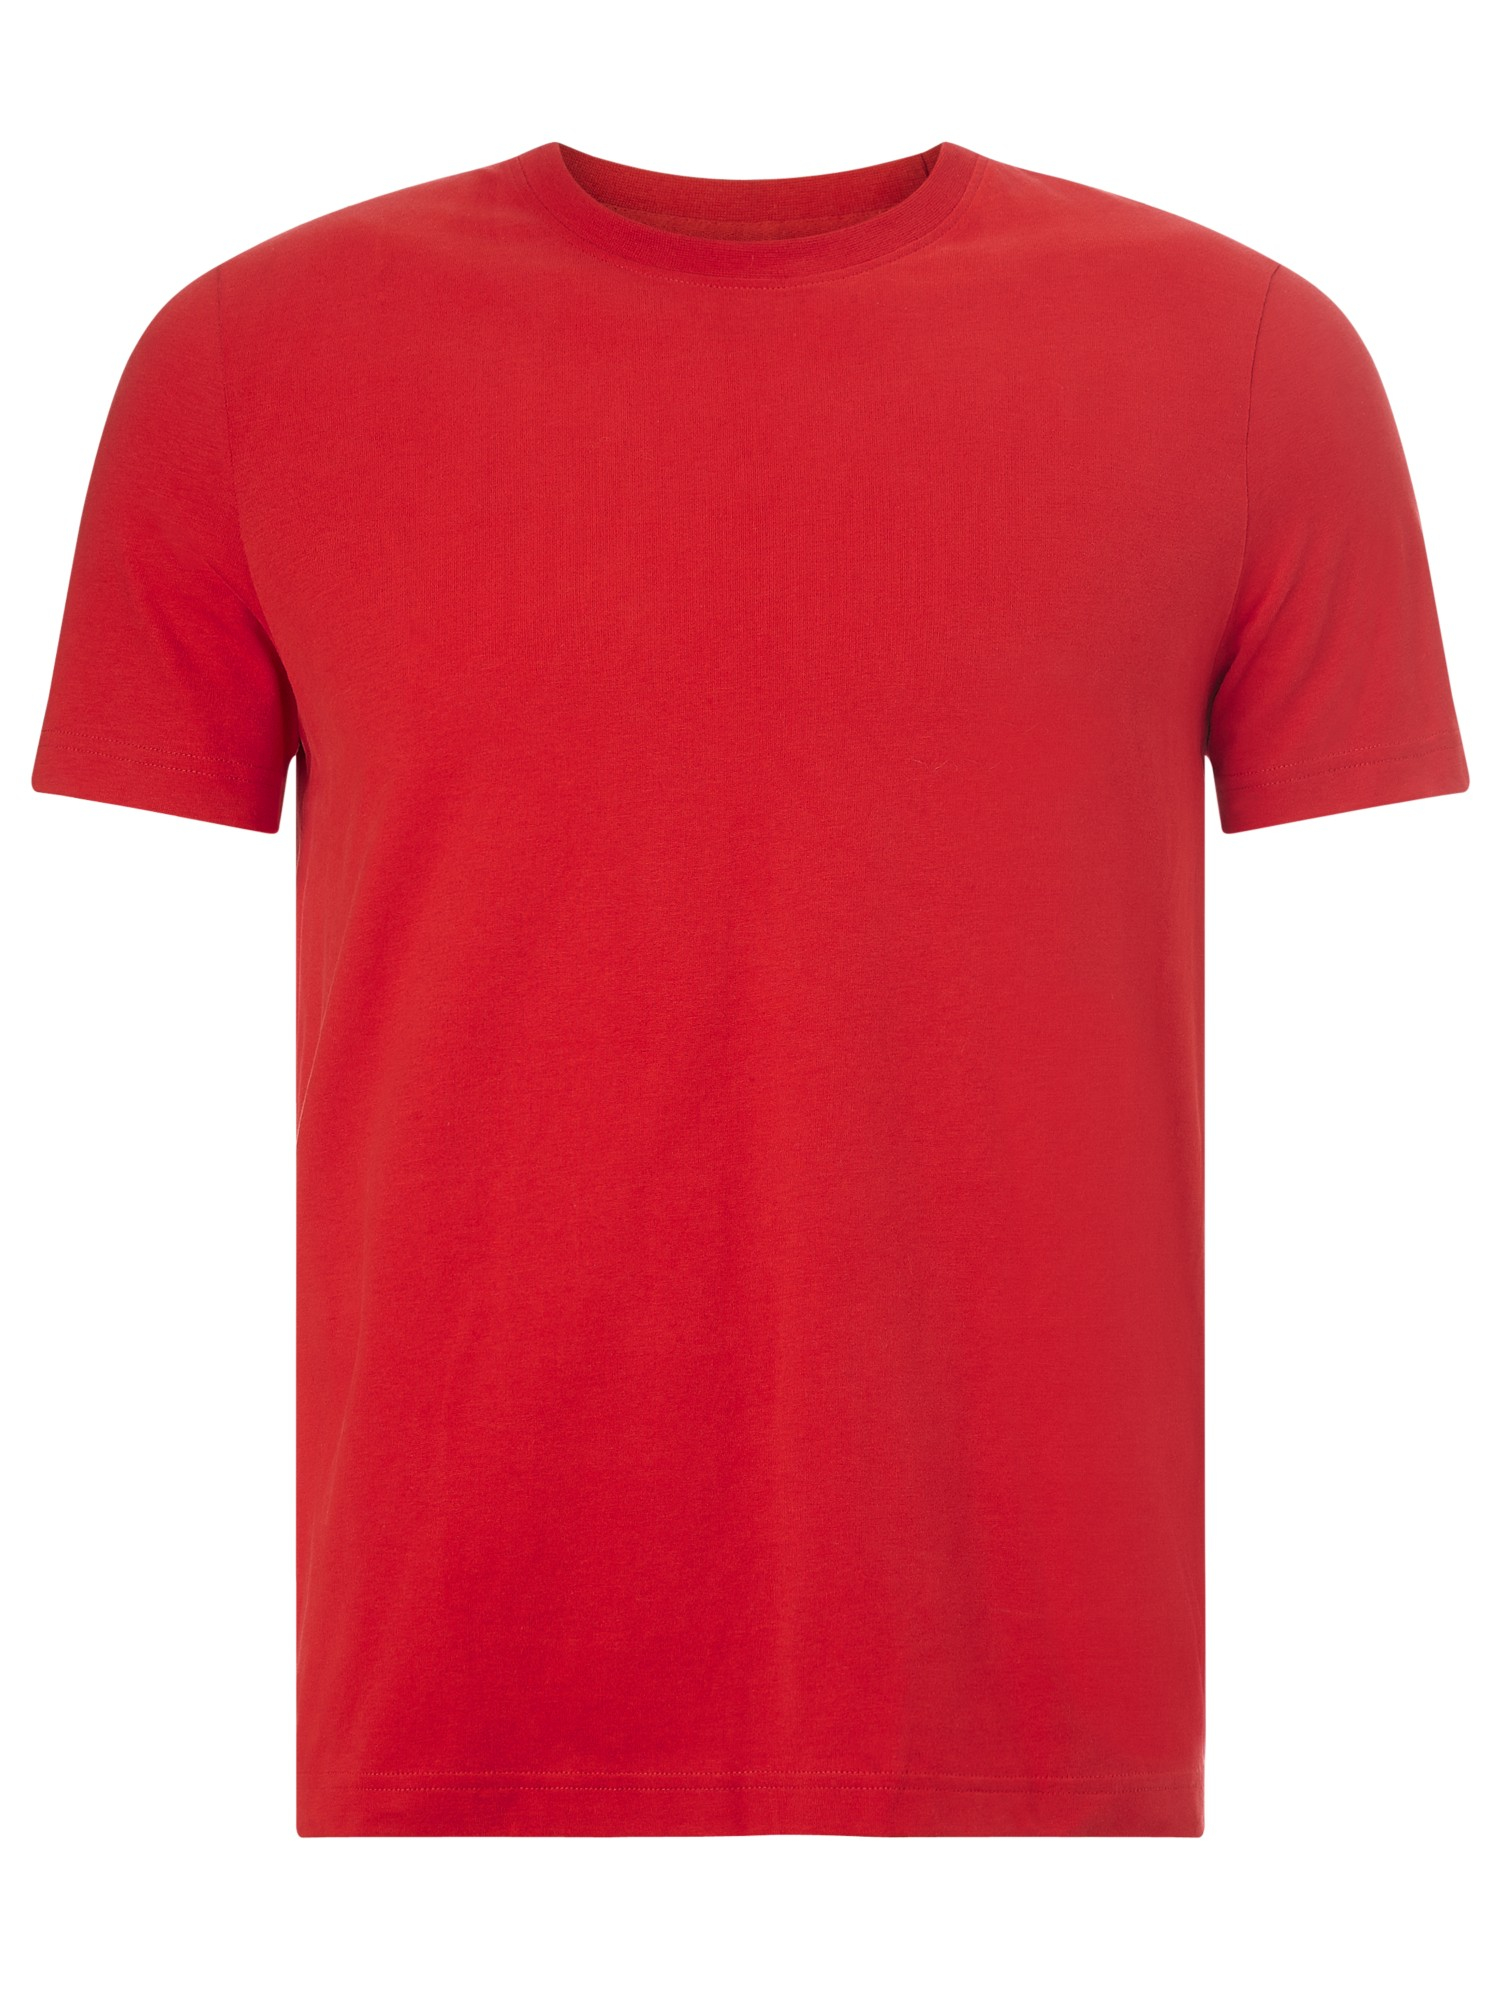 lyst john lewis jersey cotton crew neck t shirt in red. Black Bedroom Furniture Sets. Home Design Ideas